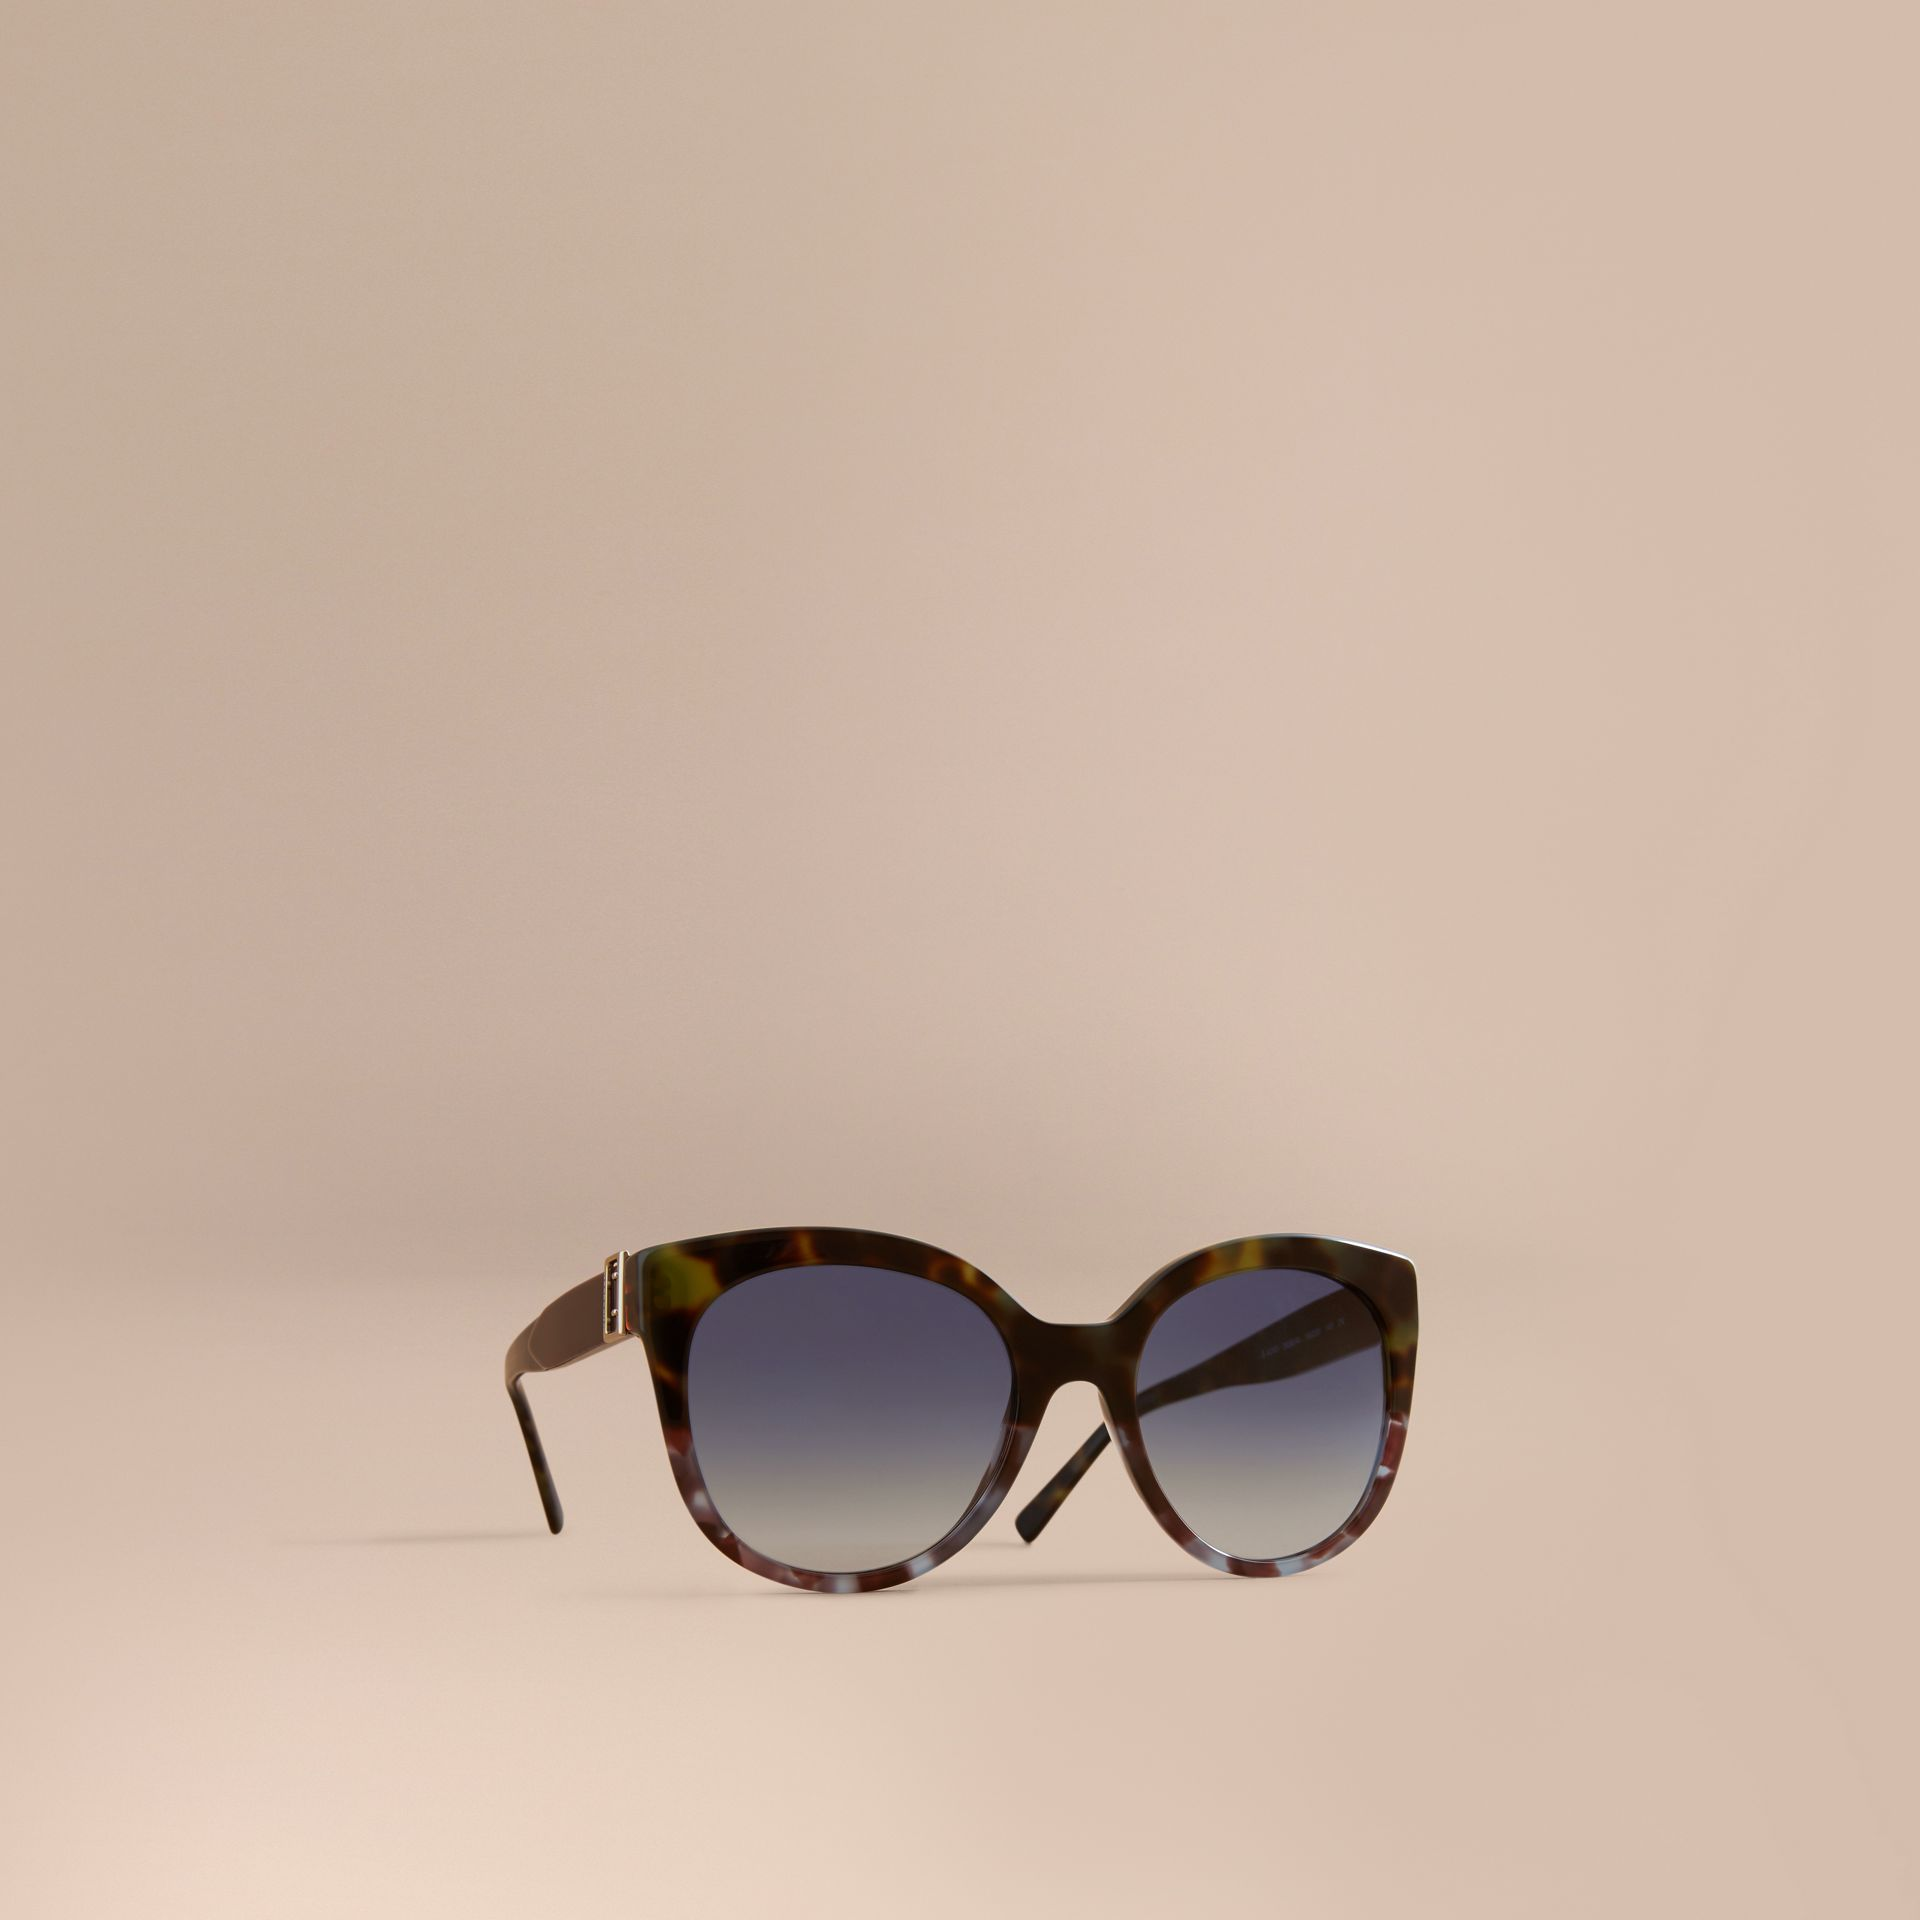 Buckle Detail Cat-eye Frame Sunglasses in Apple Green - Women | Burberry - gallery image 1